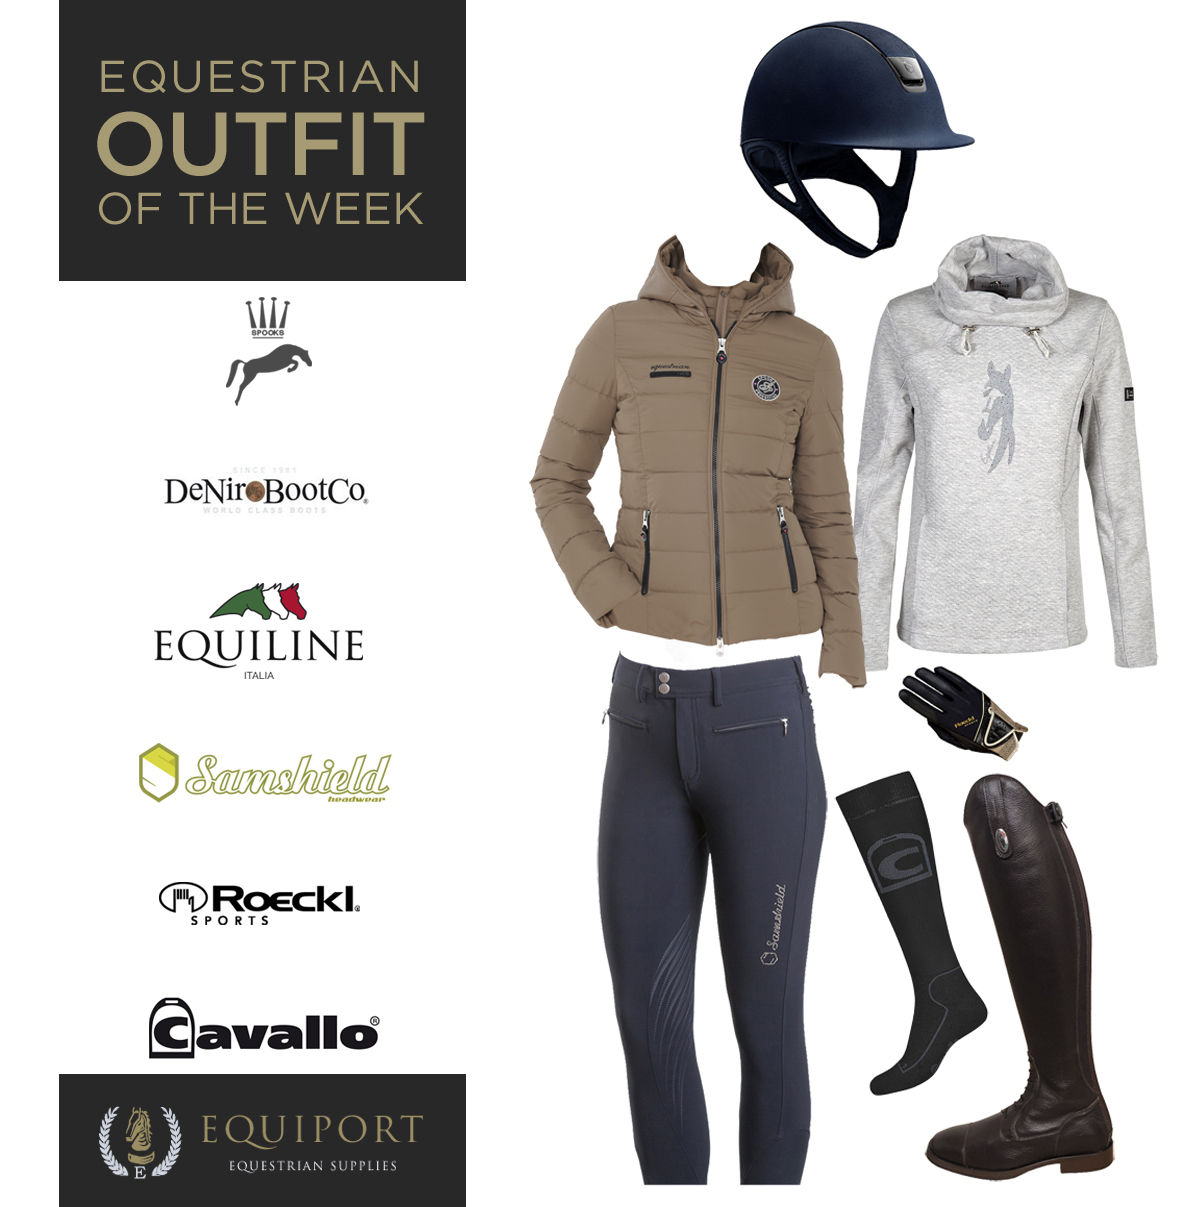 Equestrian Outfit of the Week 9 February 2018